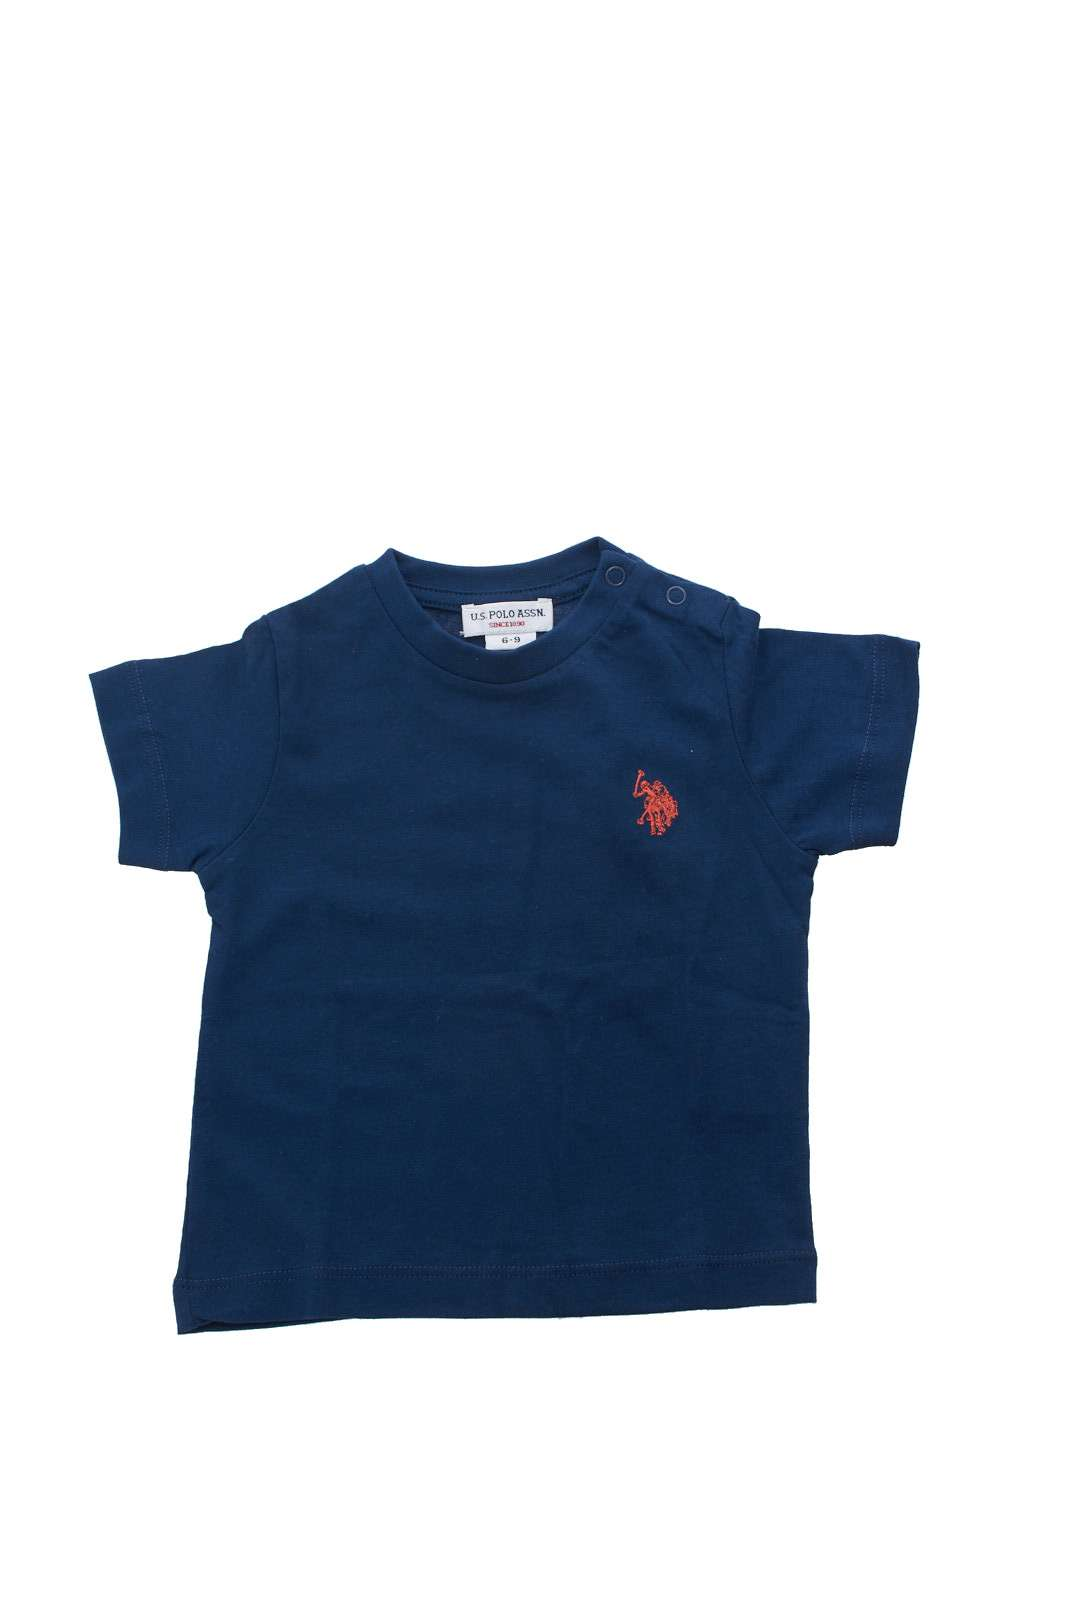 https://www.parmax.com/media/catalog/product/a/i/PE-outlet_parmax-t-shirt-bambino-Us-Polo-51202-A.jpg